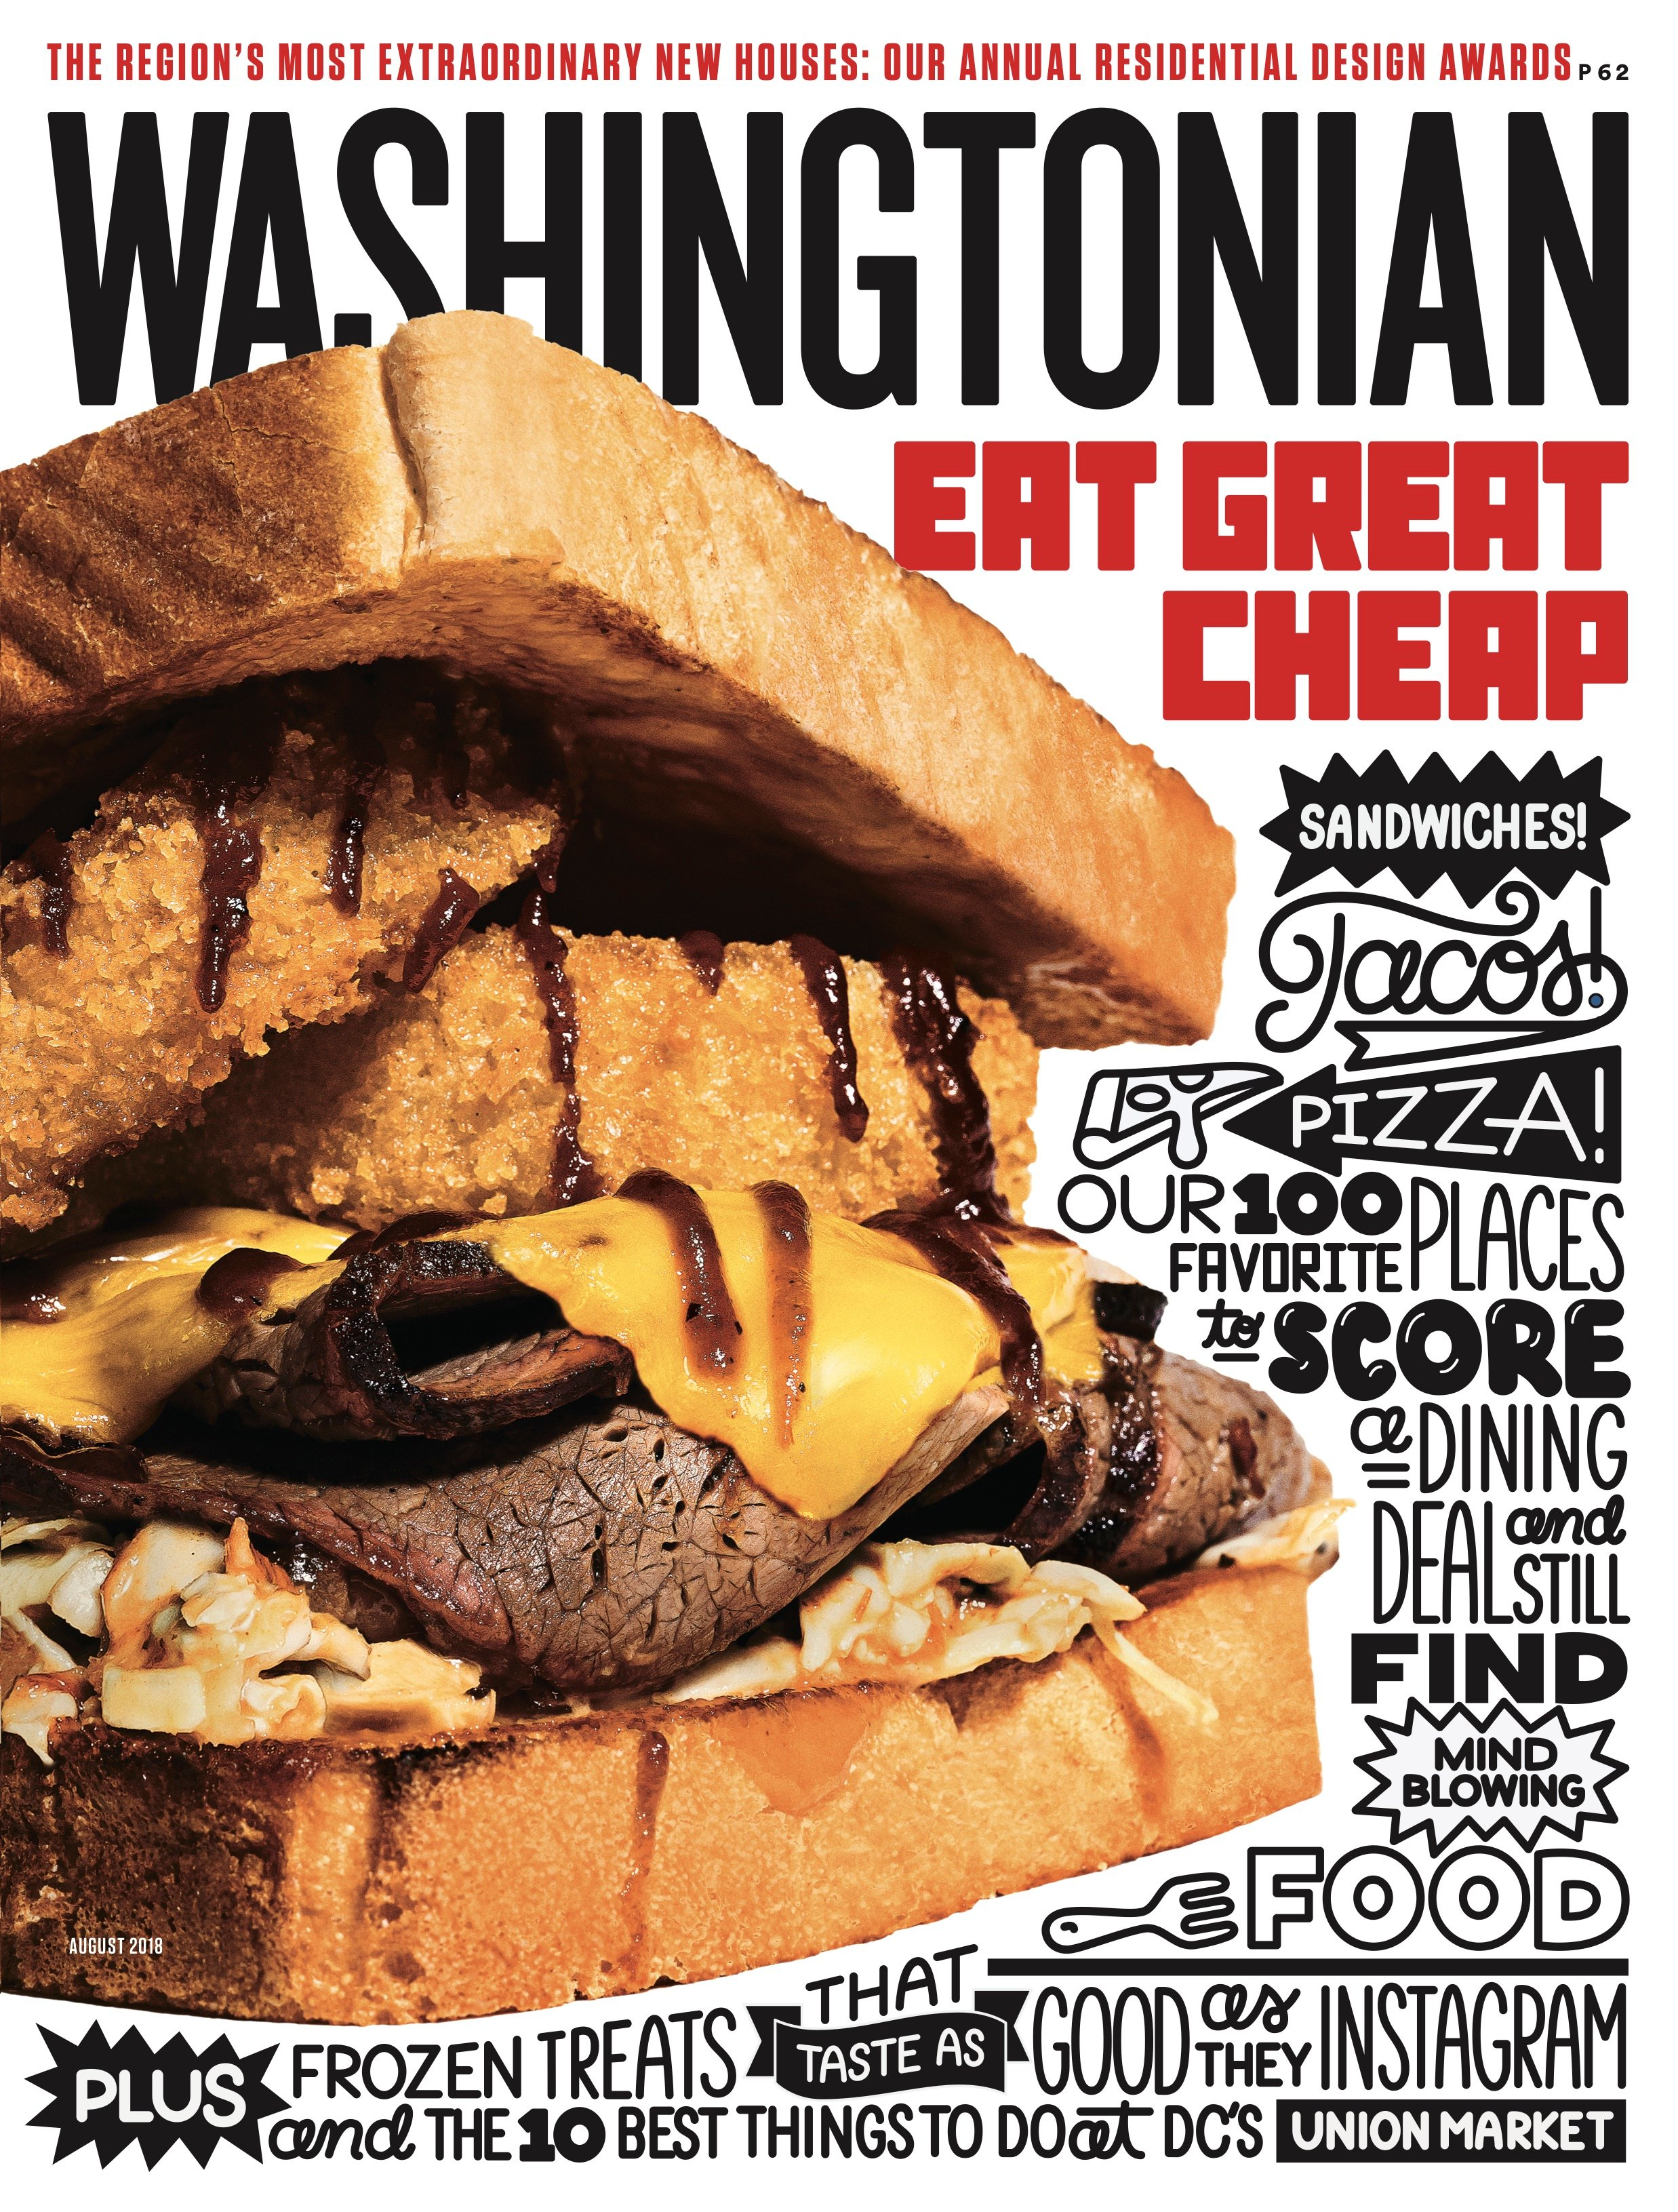 2018 Cheap Eats Washingtonian magazine